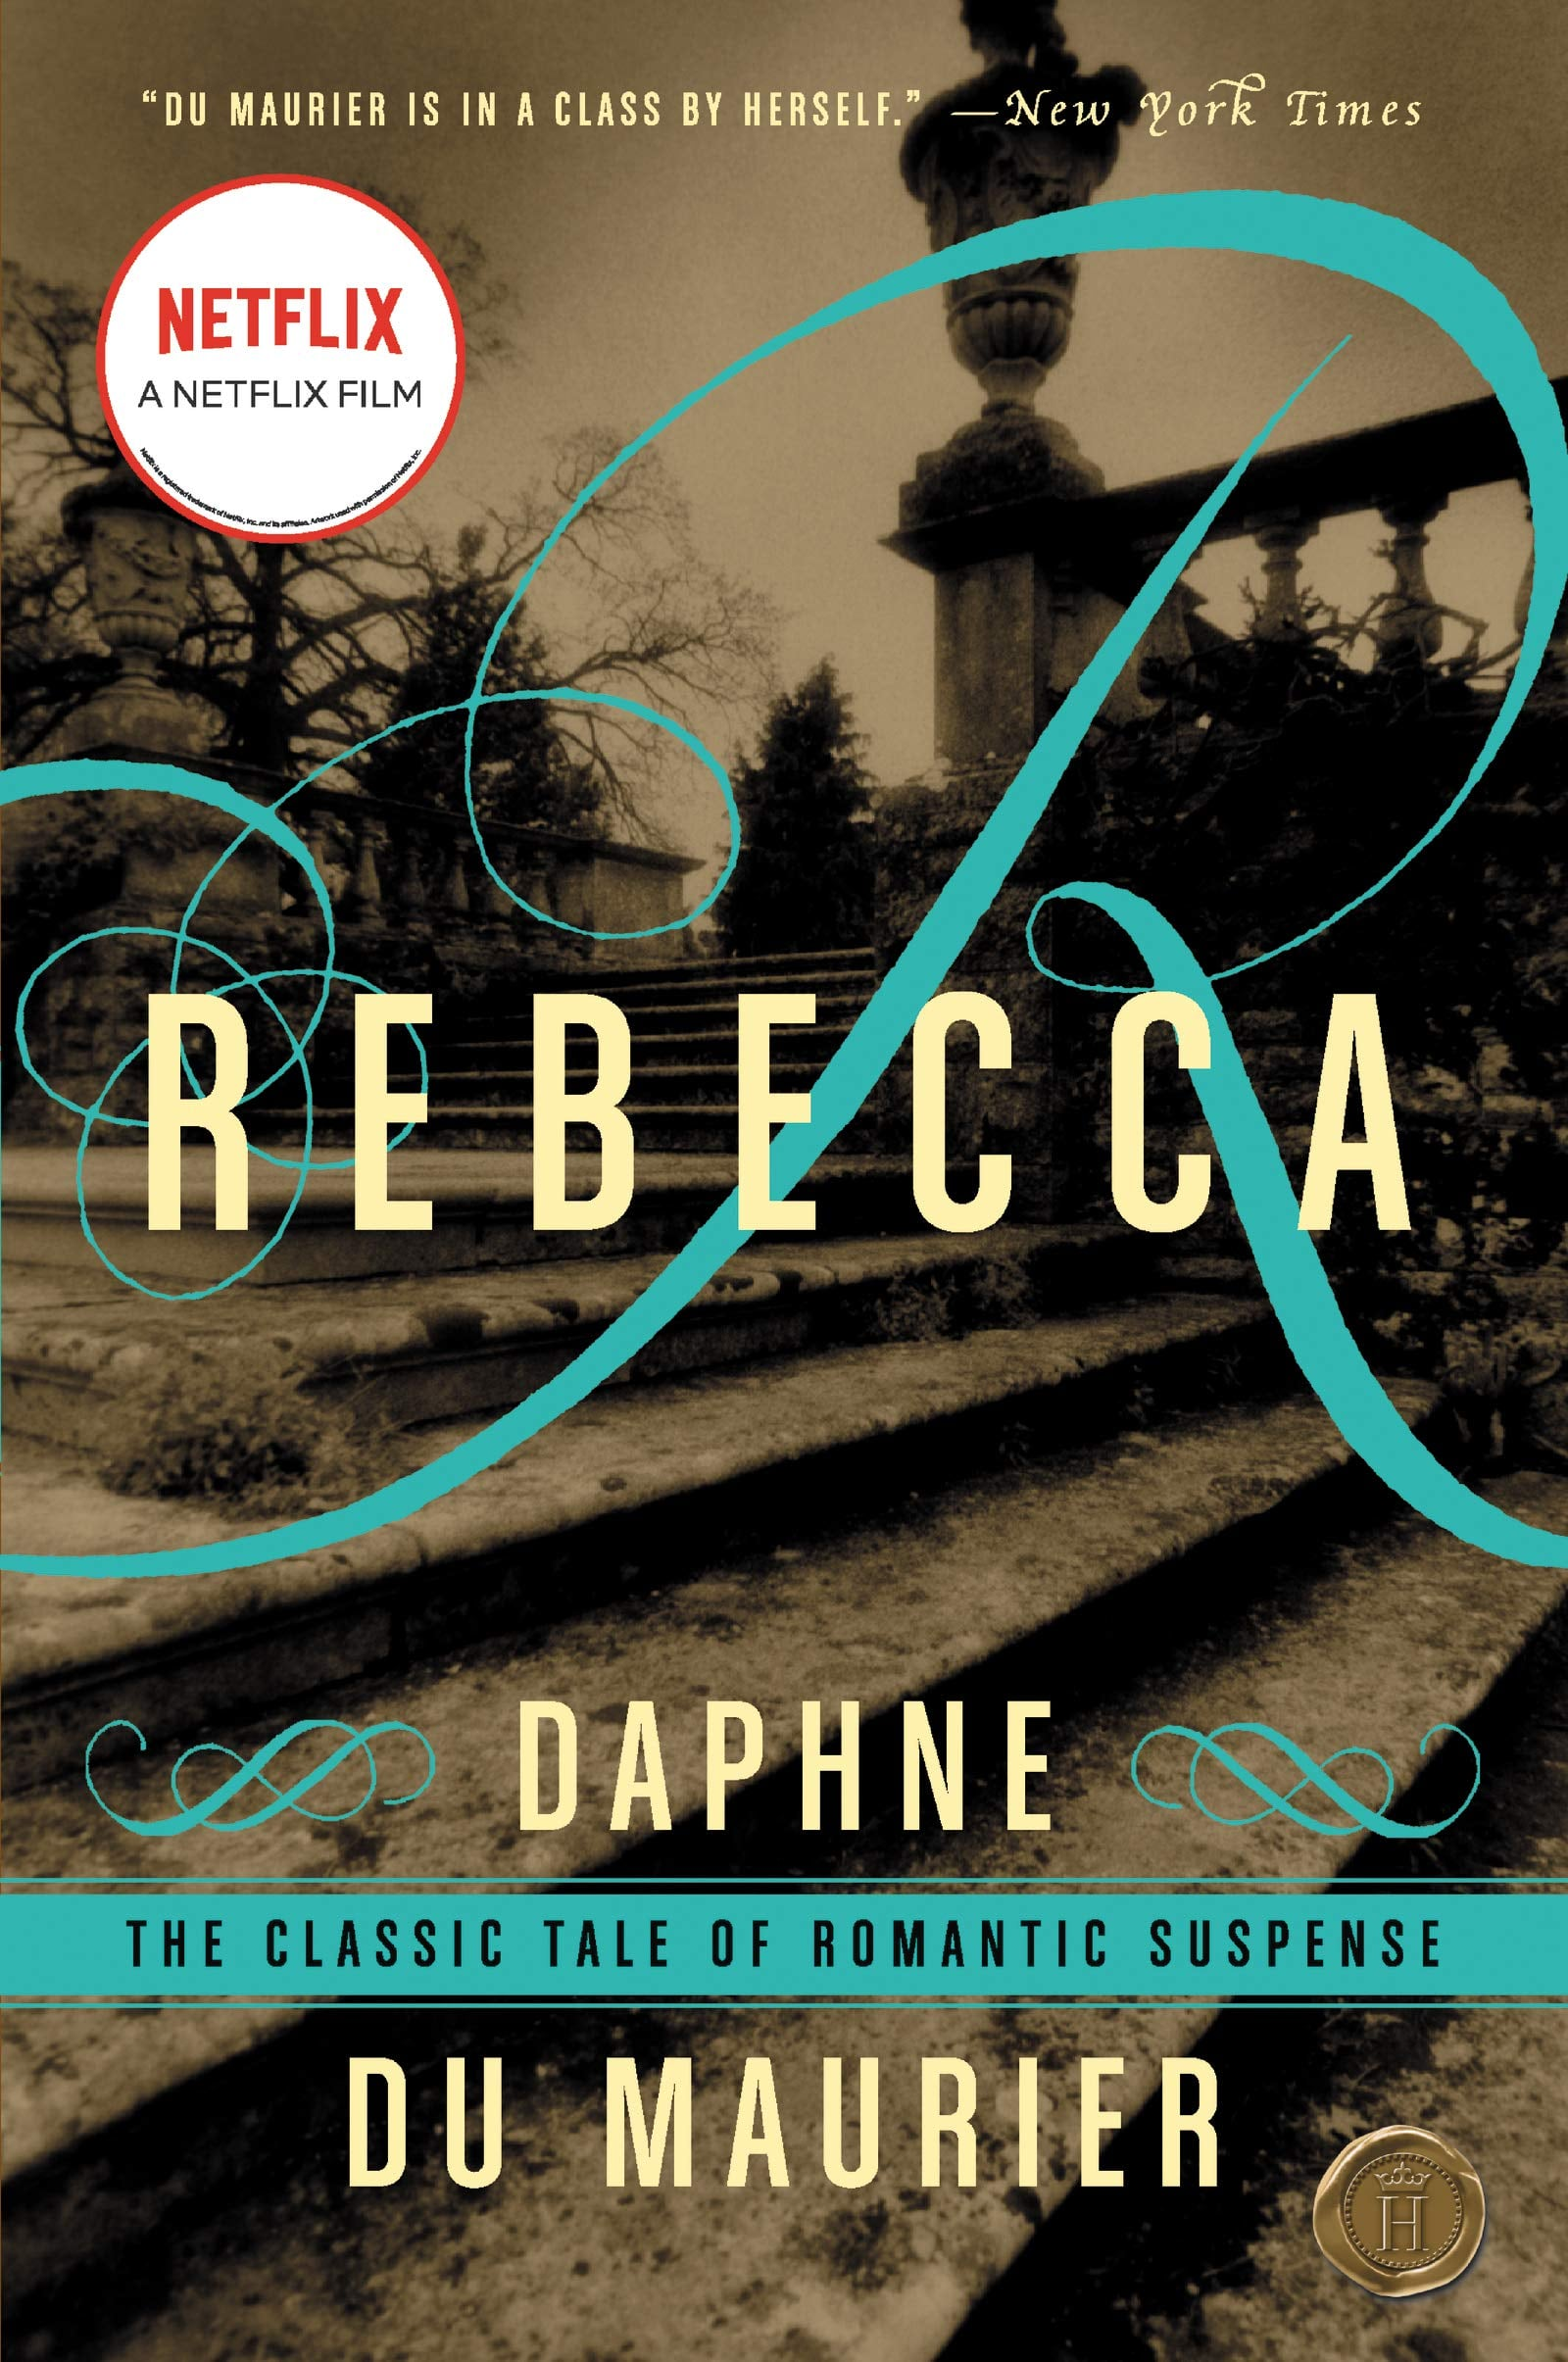 Halloween 2020 Two Ending Spoilers Rebecca by Daphne du Maurier: Book Spoilers and Ending   POPSUGAR